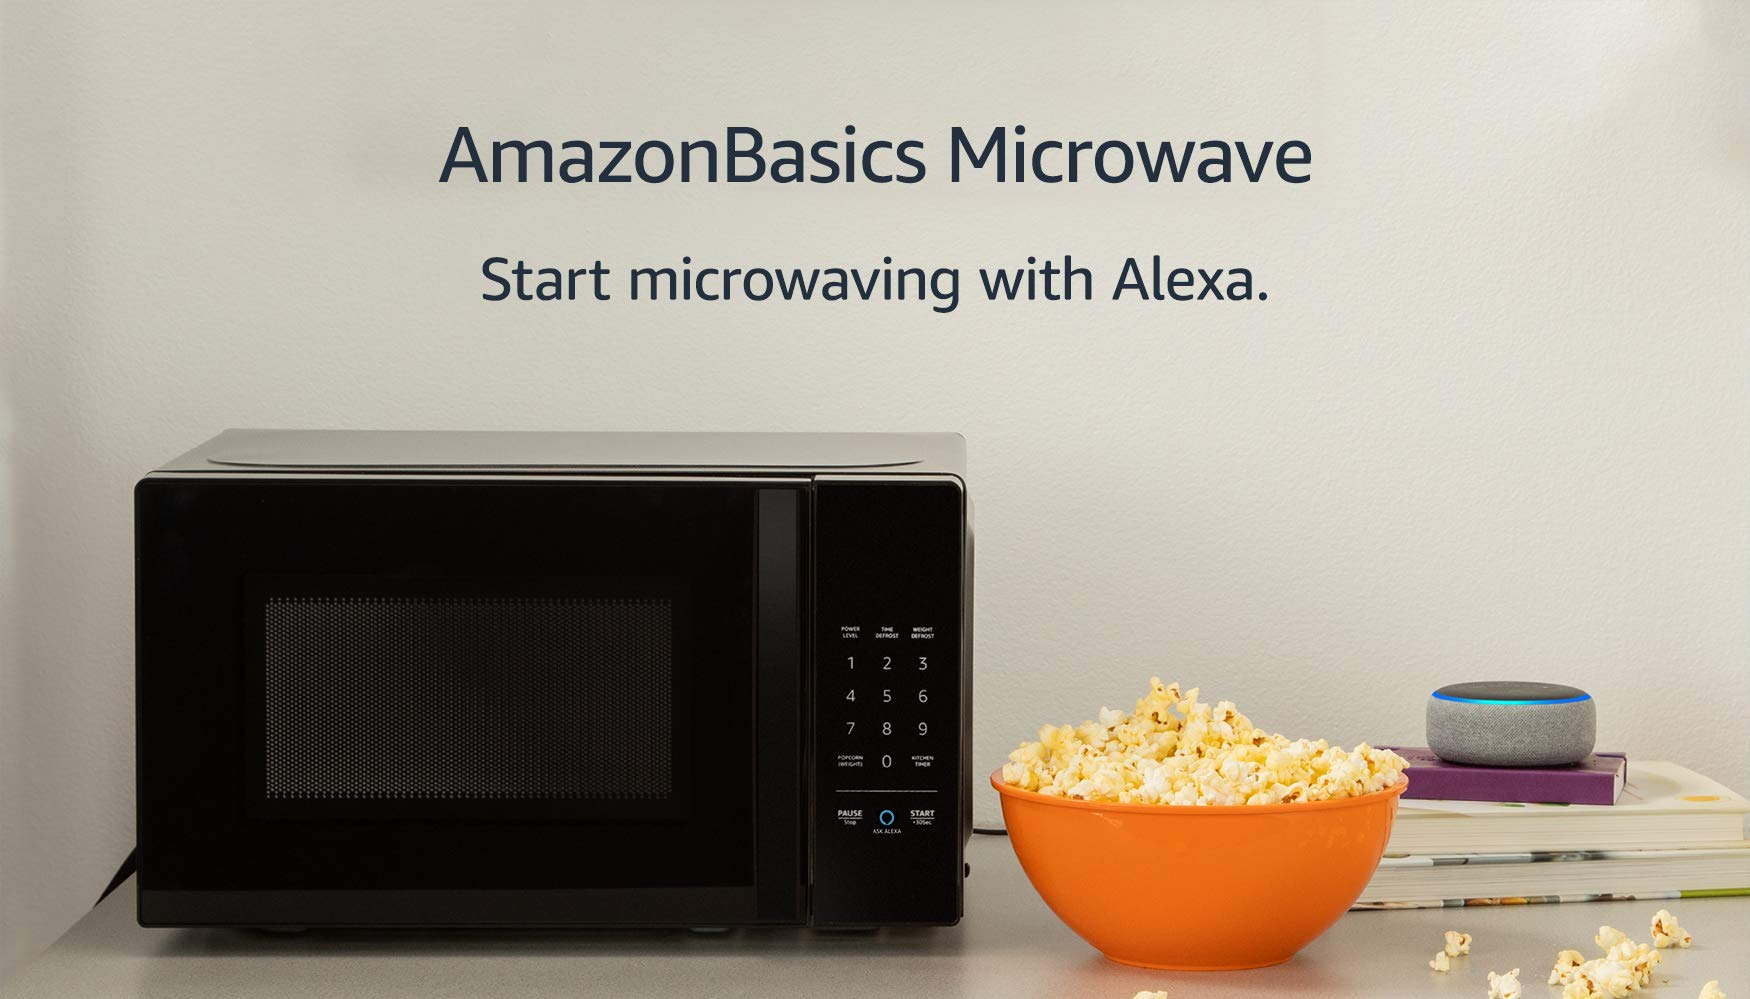 Amazon Basics Microwave bundle with Echo Dot (3rd Gen) - Charcoal 10 Now it's easier to defrost vegetables, make popcorn, cook potatoes, and reheat rice. With an Echo device (not included), quick-cook voice presets and a simplified keypad let you just ask Alexa to start microwaving. Automatically reorder popcorn when you run low and save 10% on popcorn orders-enabled by Amazon Dash Replenishment technology Compact size saves counter space, plus 10 power levels, a kitchen timer, a child lock, and a turntable.